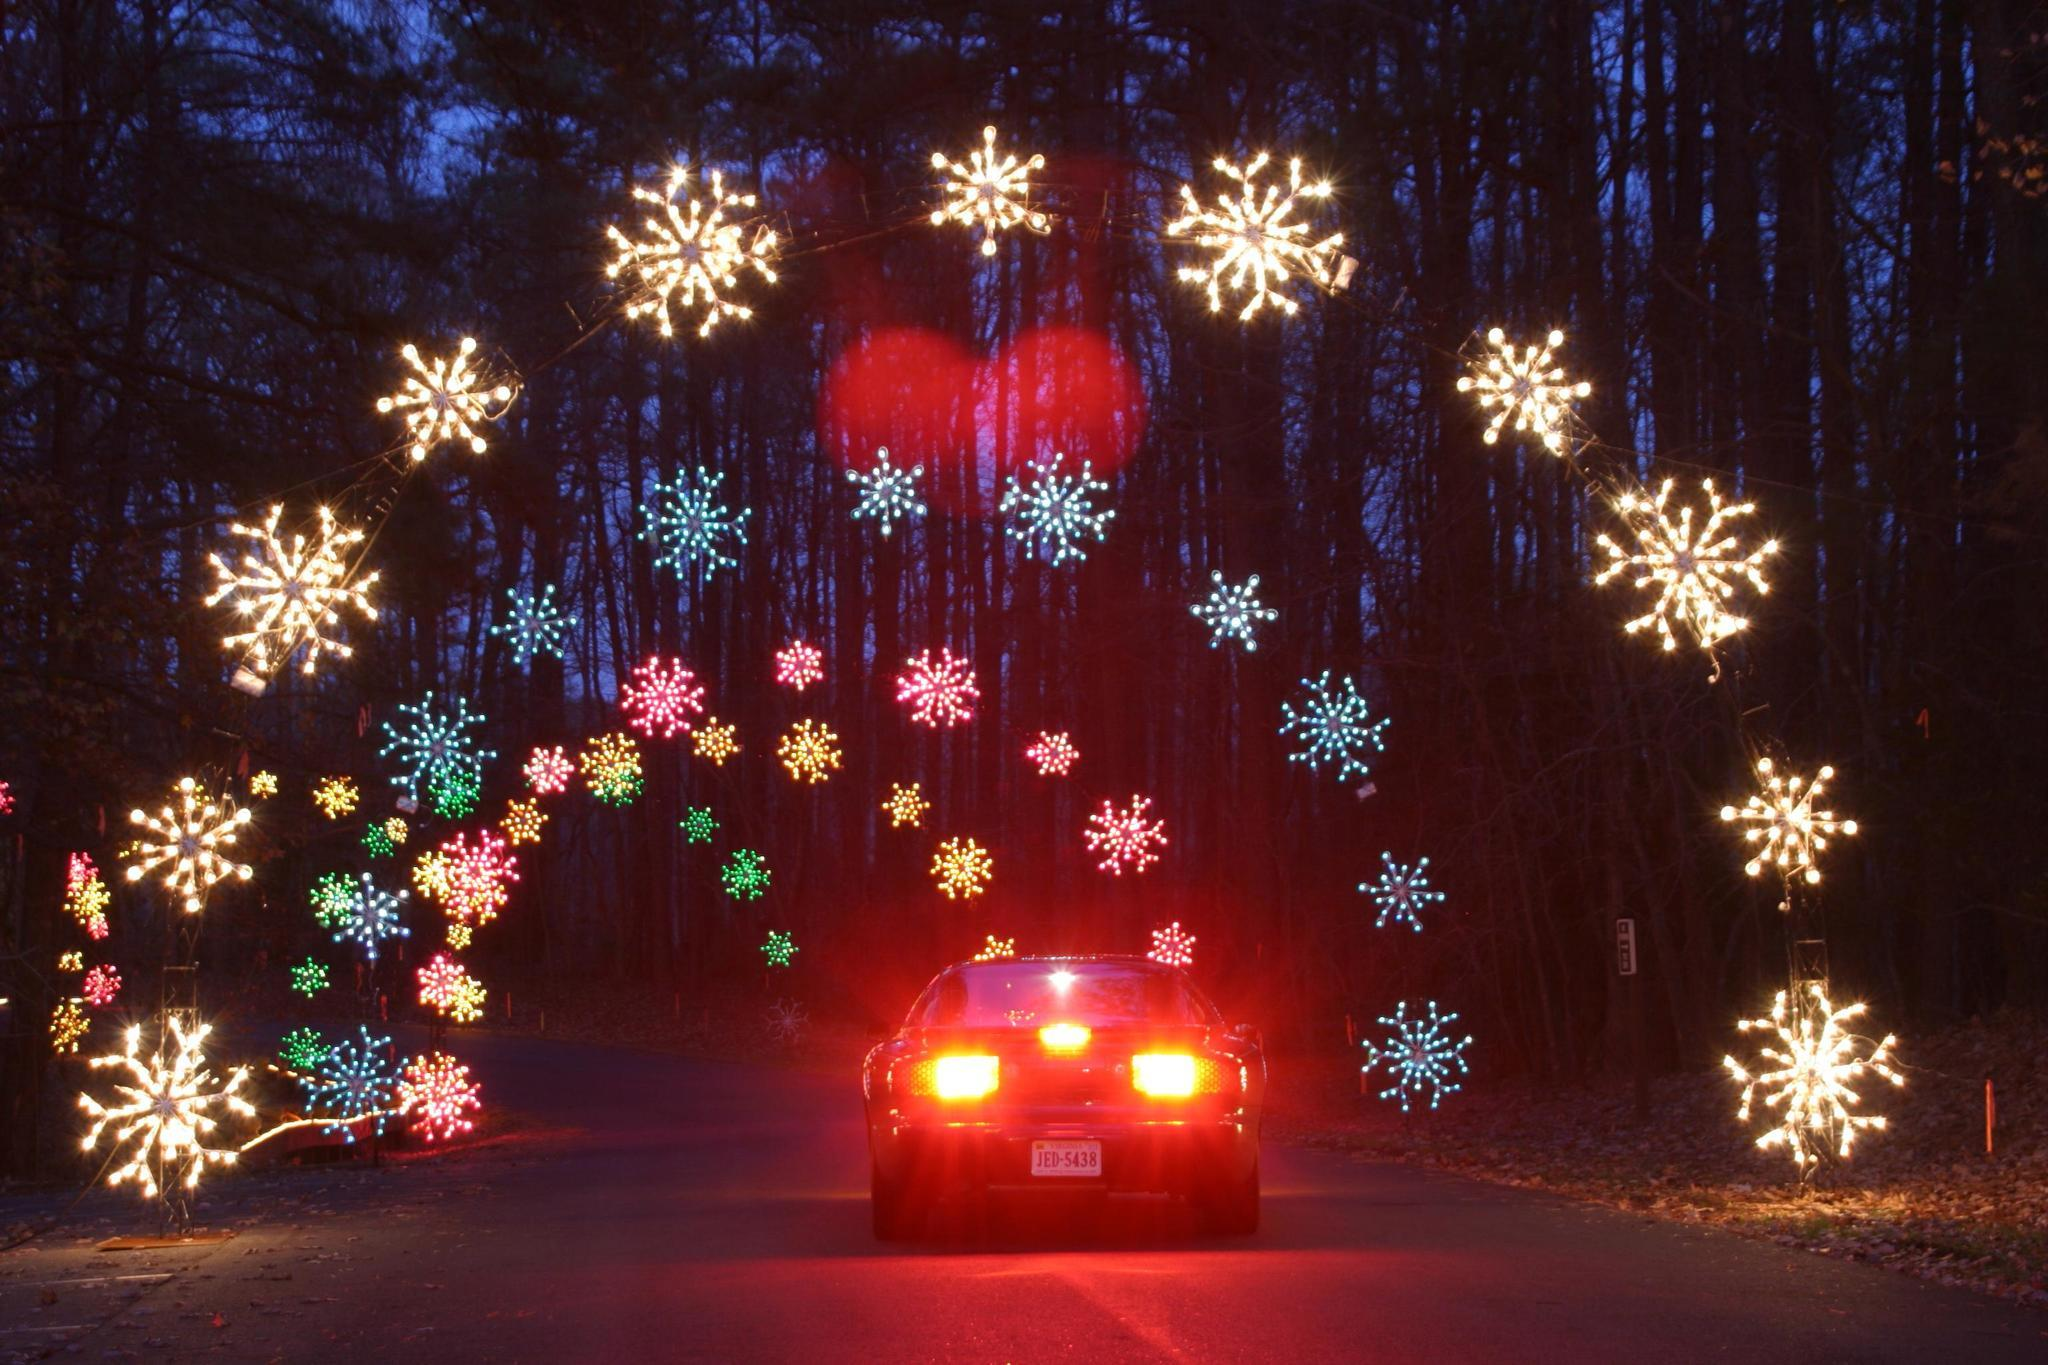 nns celebration in lights shines along 100 miles of light displays from virginia beach to richmond daily press - Virginia Beach Christmas Lights